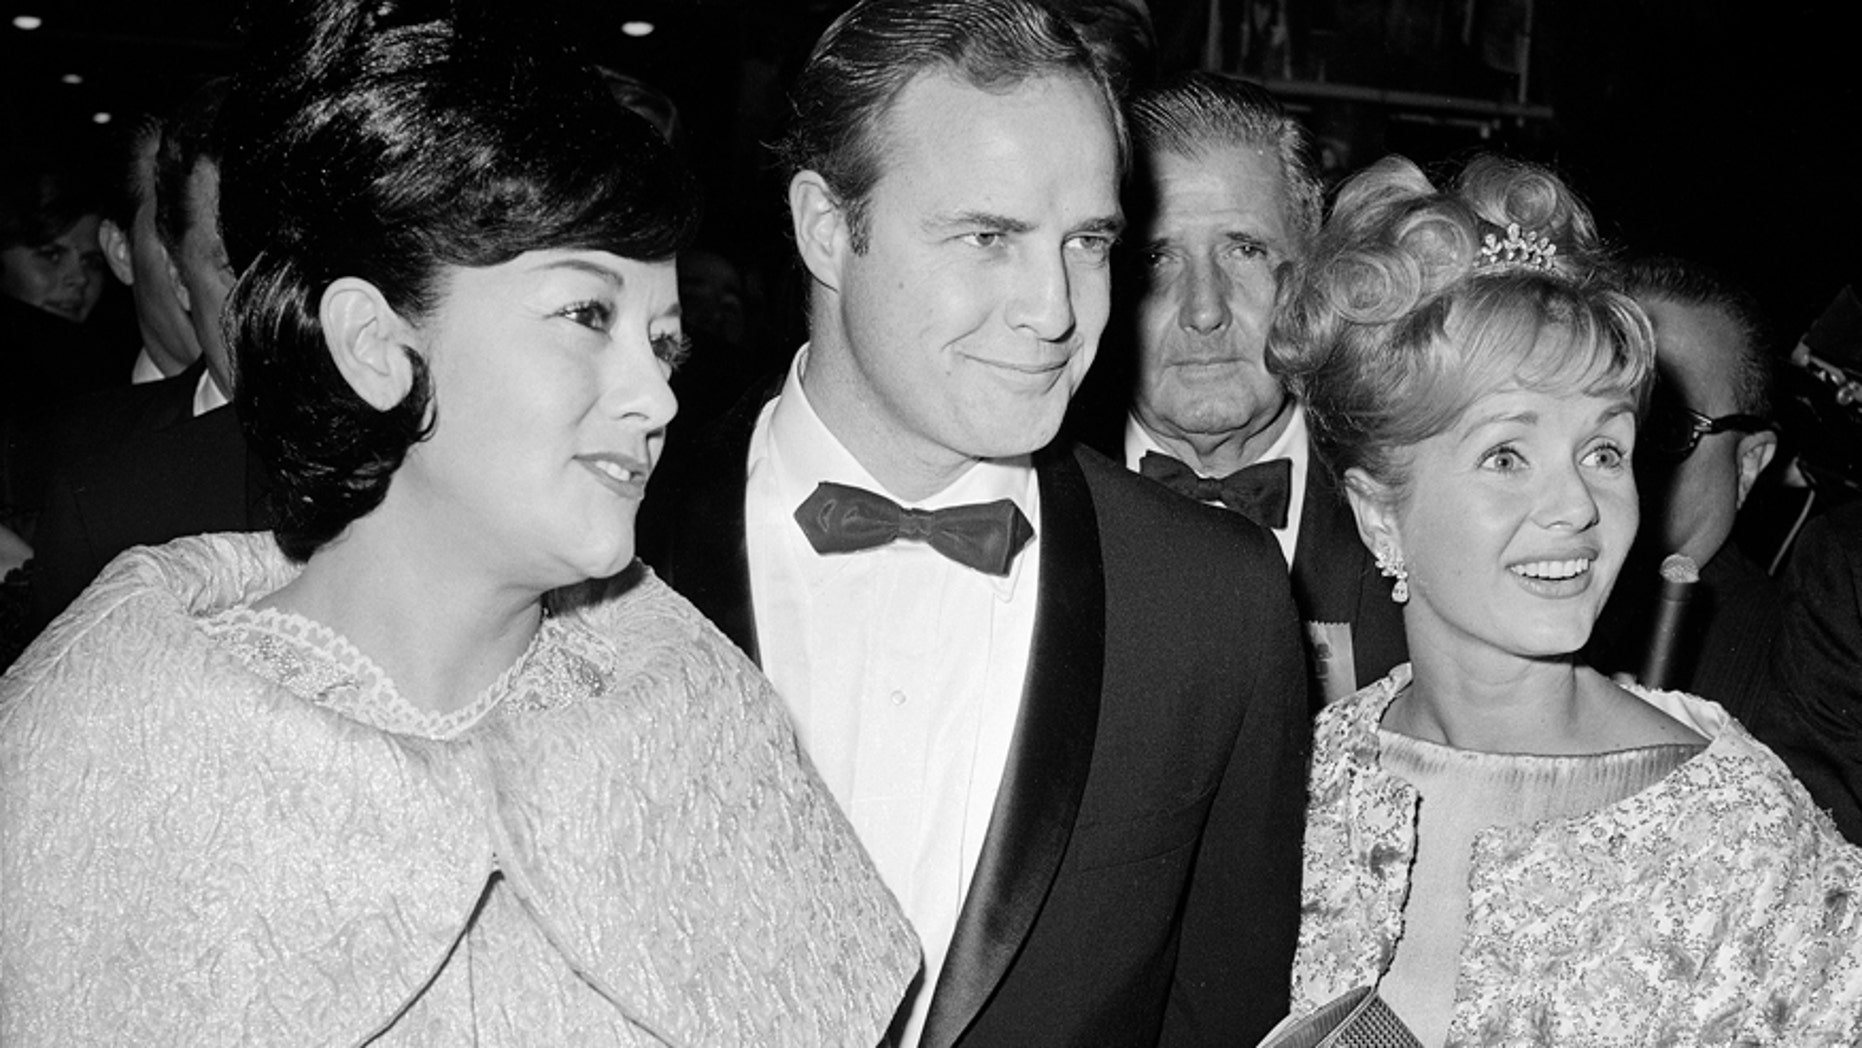 """FILE-This Nov. 15, 1962 file photo shows Marlon Brando, his wife, Mexican actress Movita Castaneda, left, and actress Debbie Reynolds, right, arriving for the West Coast premiere of """"Mutiny on the Bounty"""" at the Hollywood Egyptian Theater in Los Angeles. Castaneda, the dark-haired actress who met Brando on a movie set and later married him and had two of his children died Thursday, Feb. 12, 2015 at a Los Angeles rehabilitation center after being treated for a neck injury. The Los Angeles Times says Castaneda was believed to be 98."""